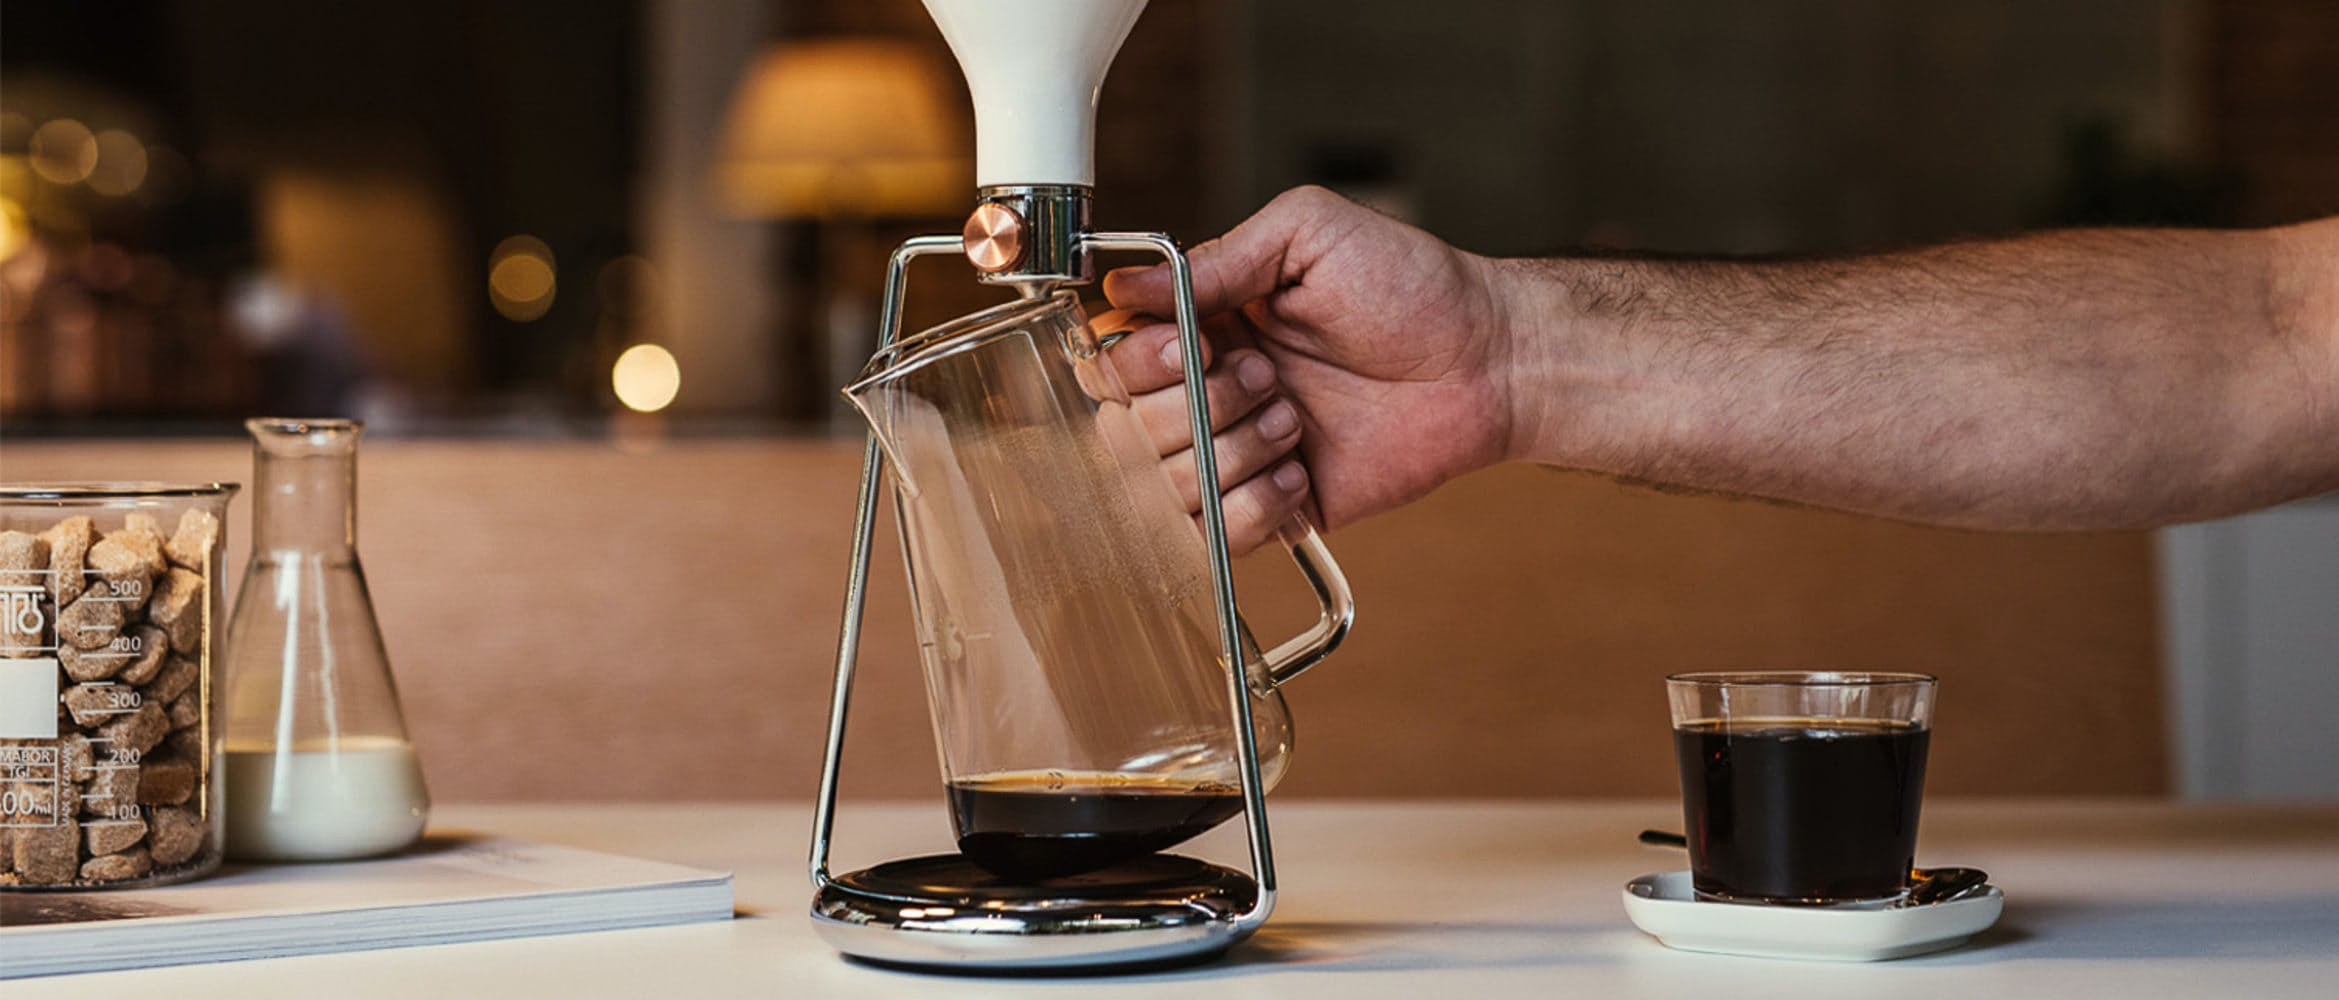 Featured 2x methods to brew the perfect cup of coffee at home.jpg?ixlib=rails 2.1